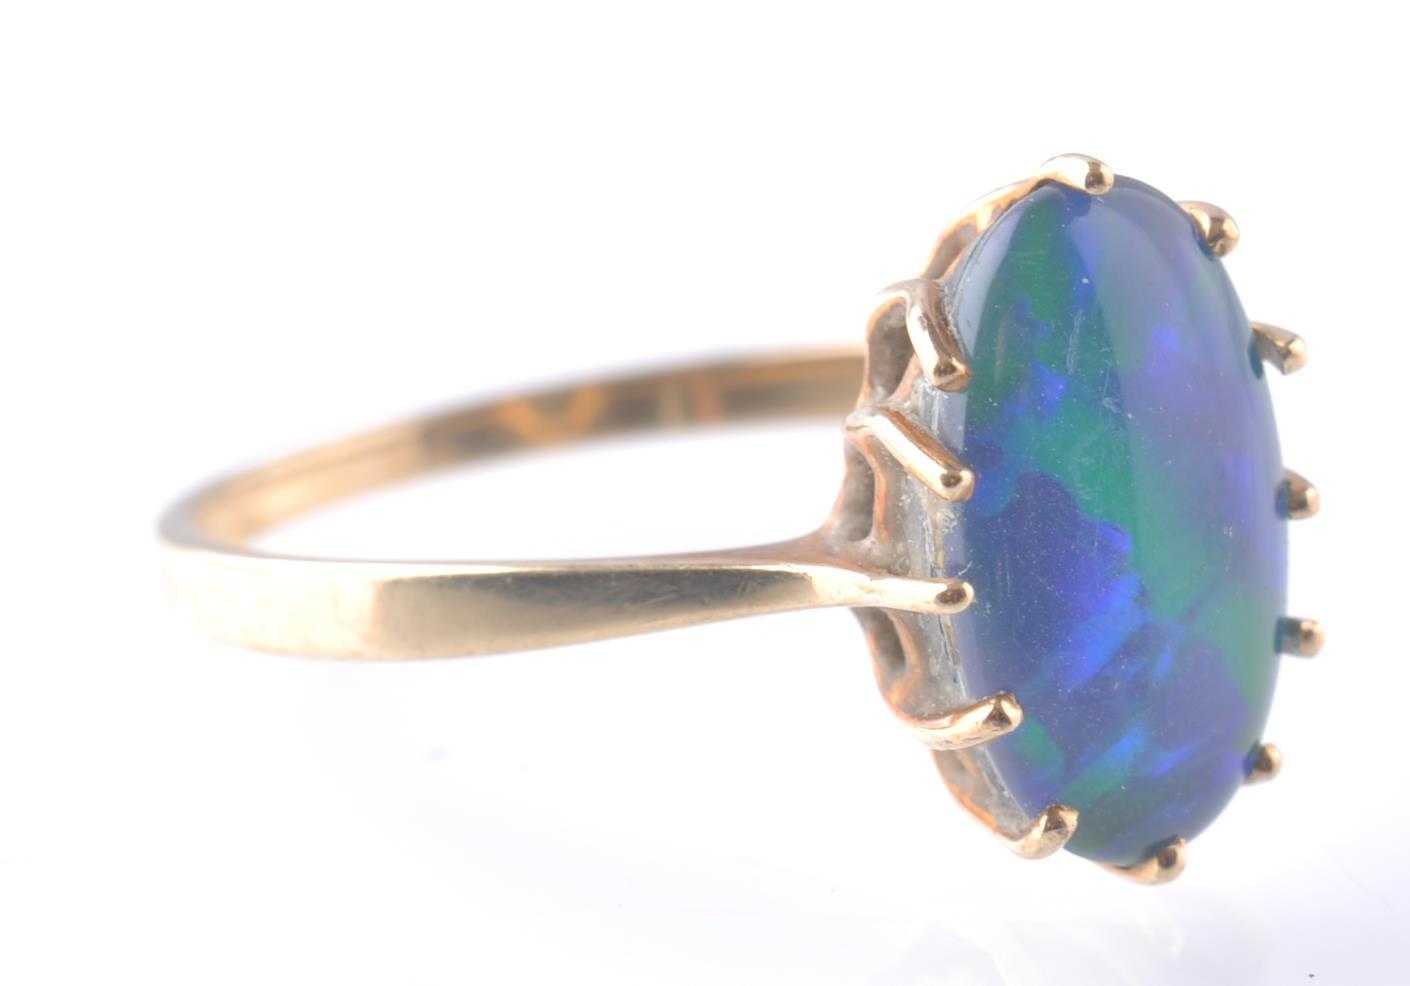 9CT / 375 GOLD AND BLACK OPAL RING - Image 3 of 4